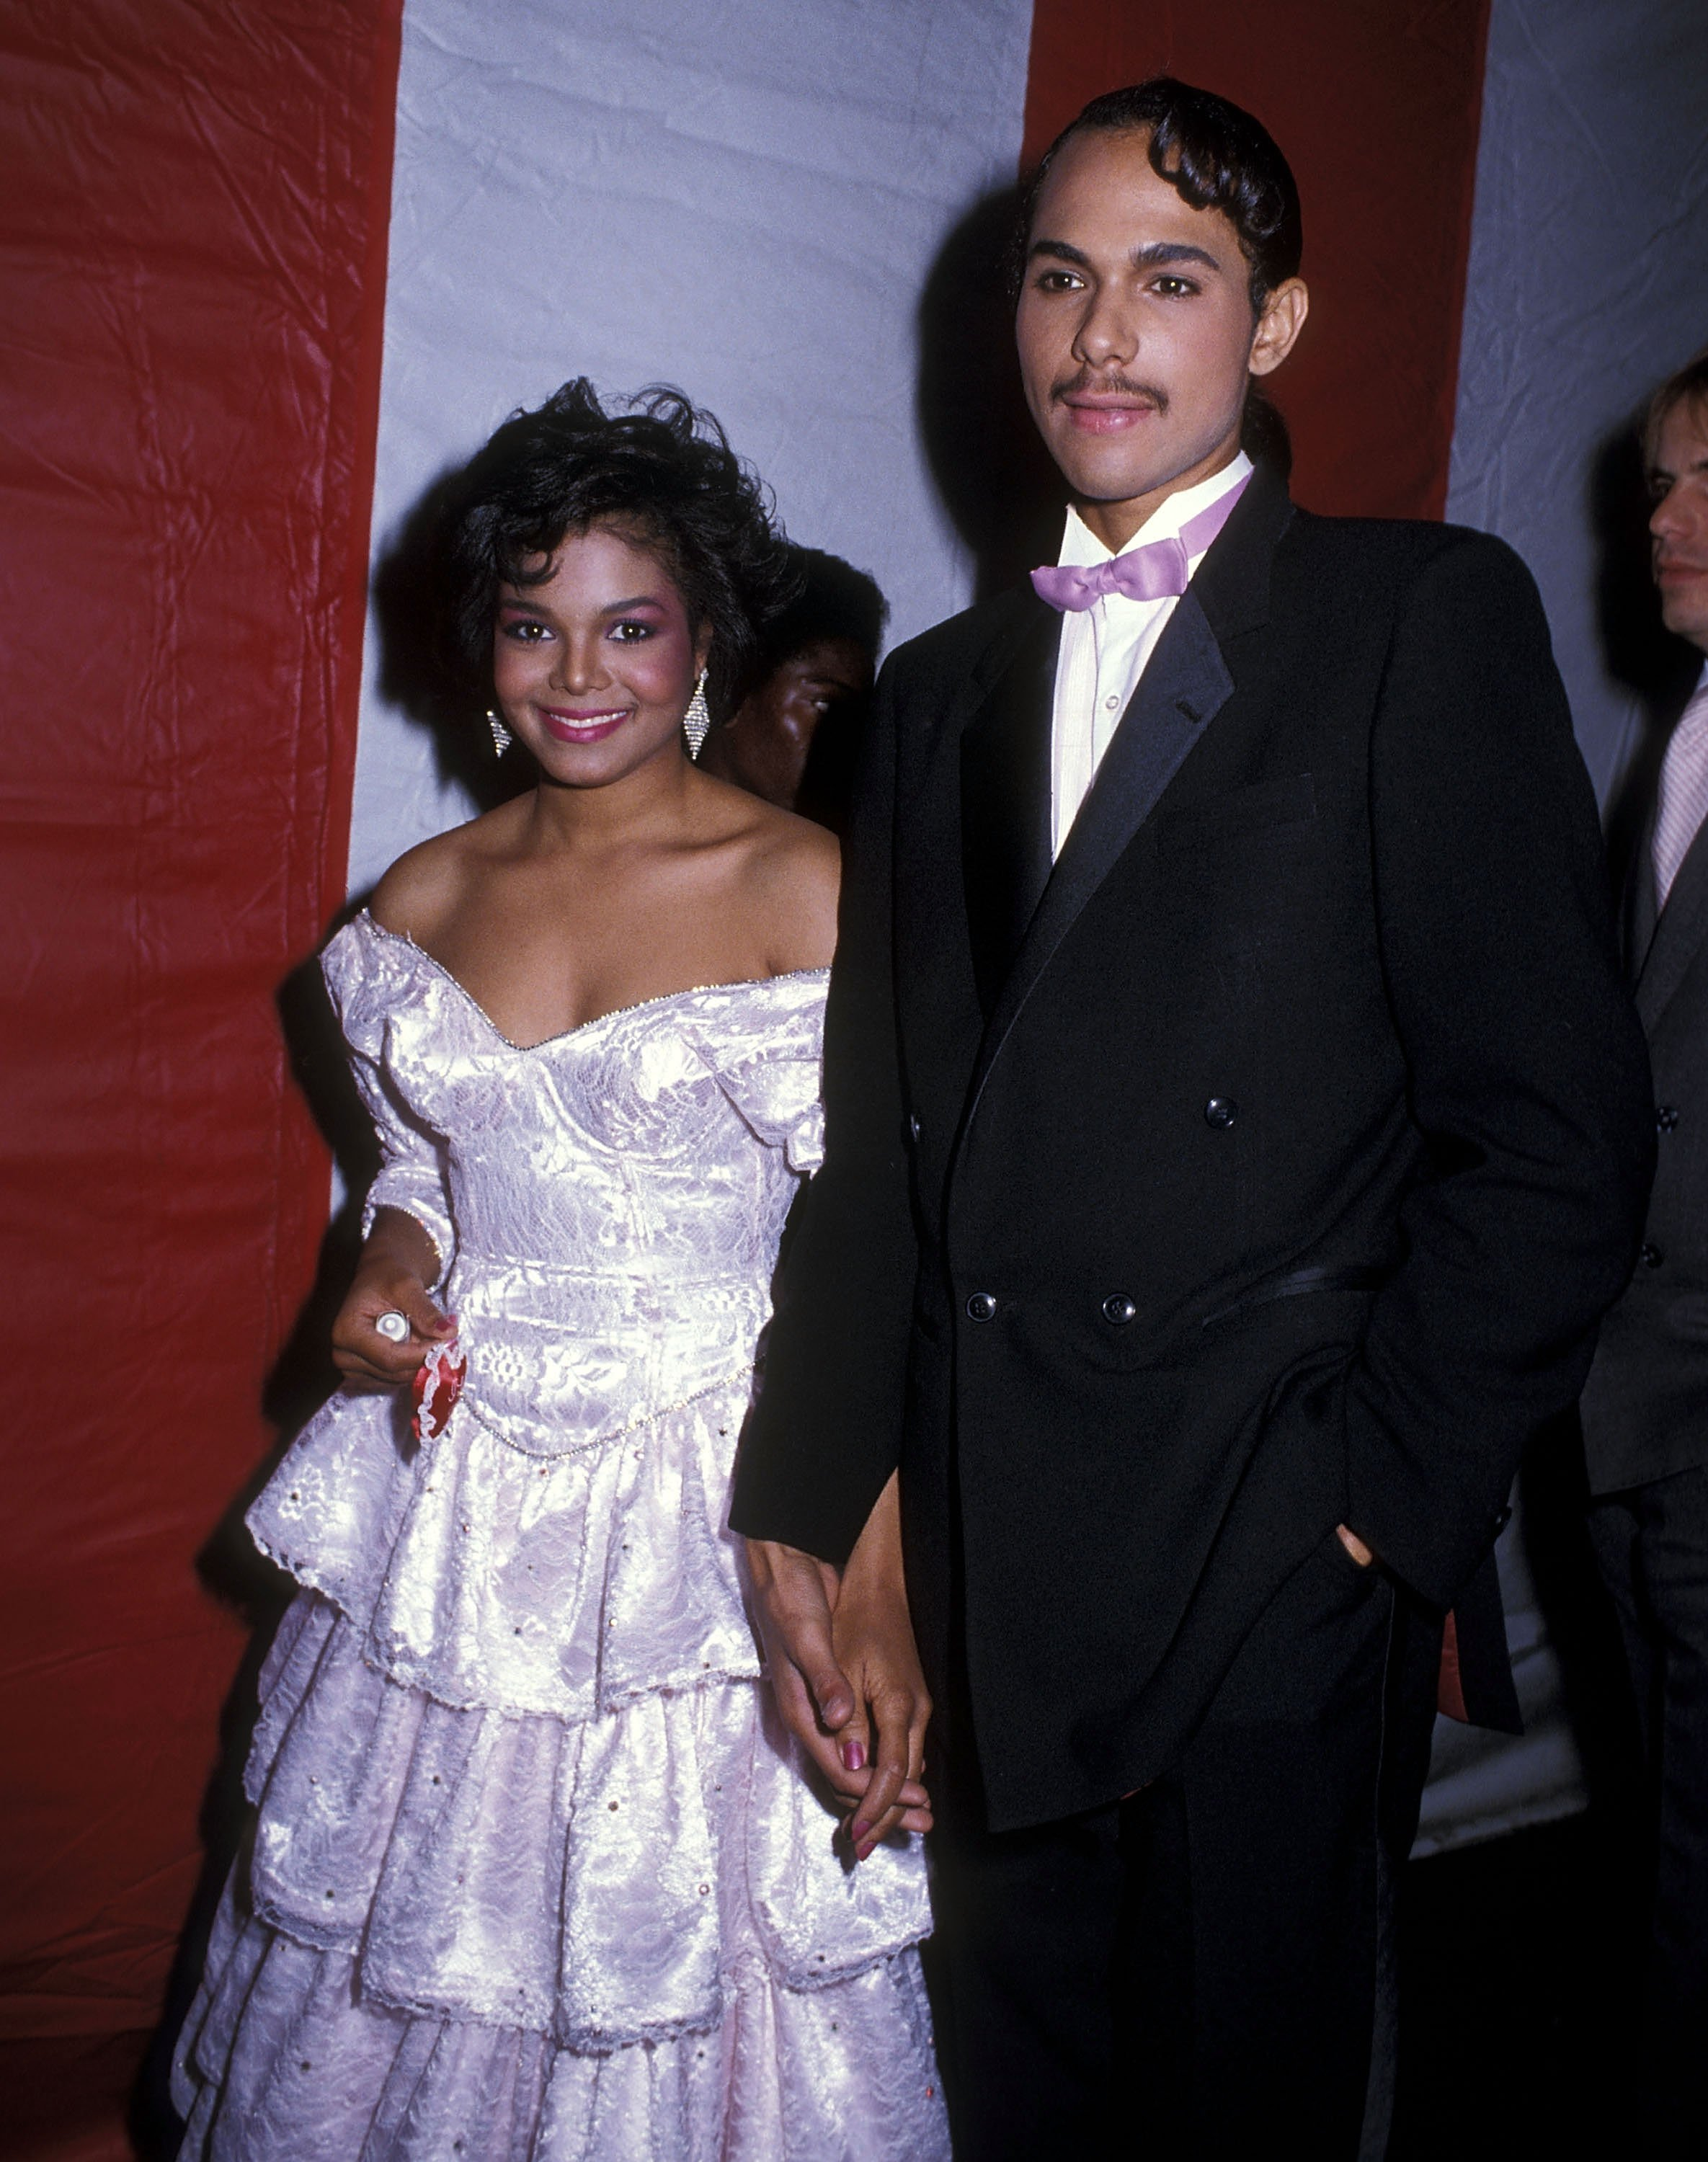 Janet Jackson and James DeBarge at the 12th Annual AMAs on January 28, 1985 at Shrine Auditorium in Los Angeles, California.|Source: Getty Images